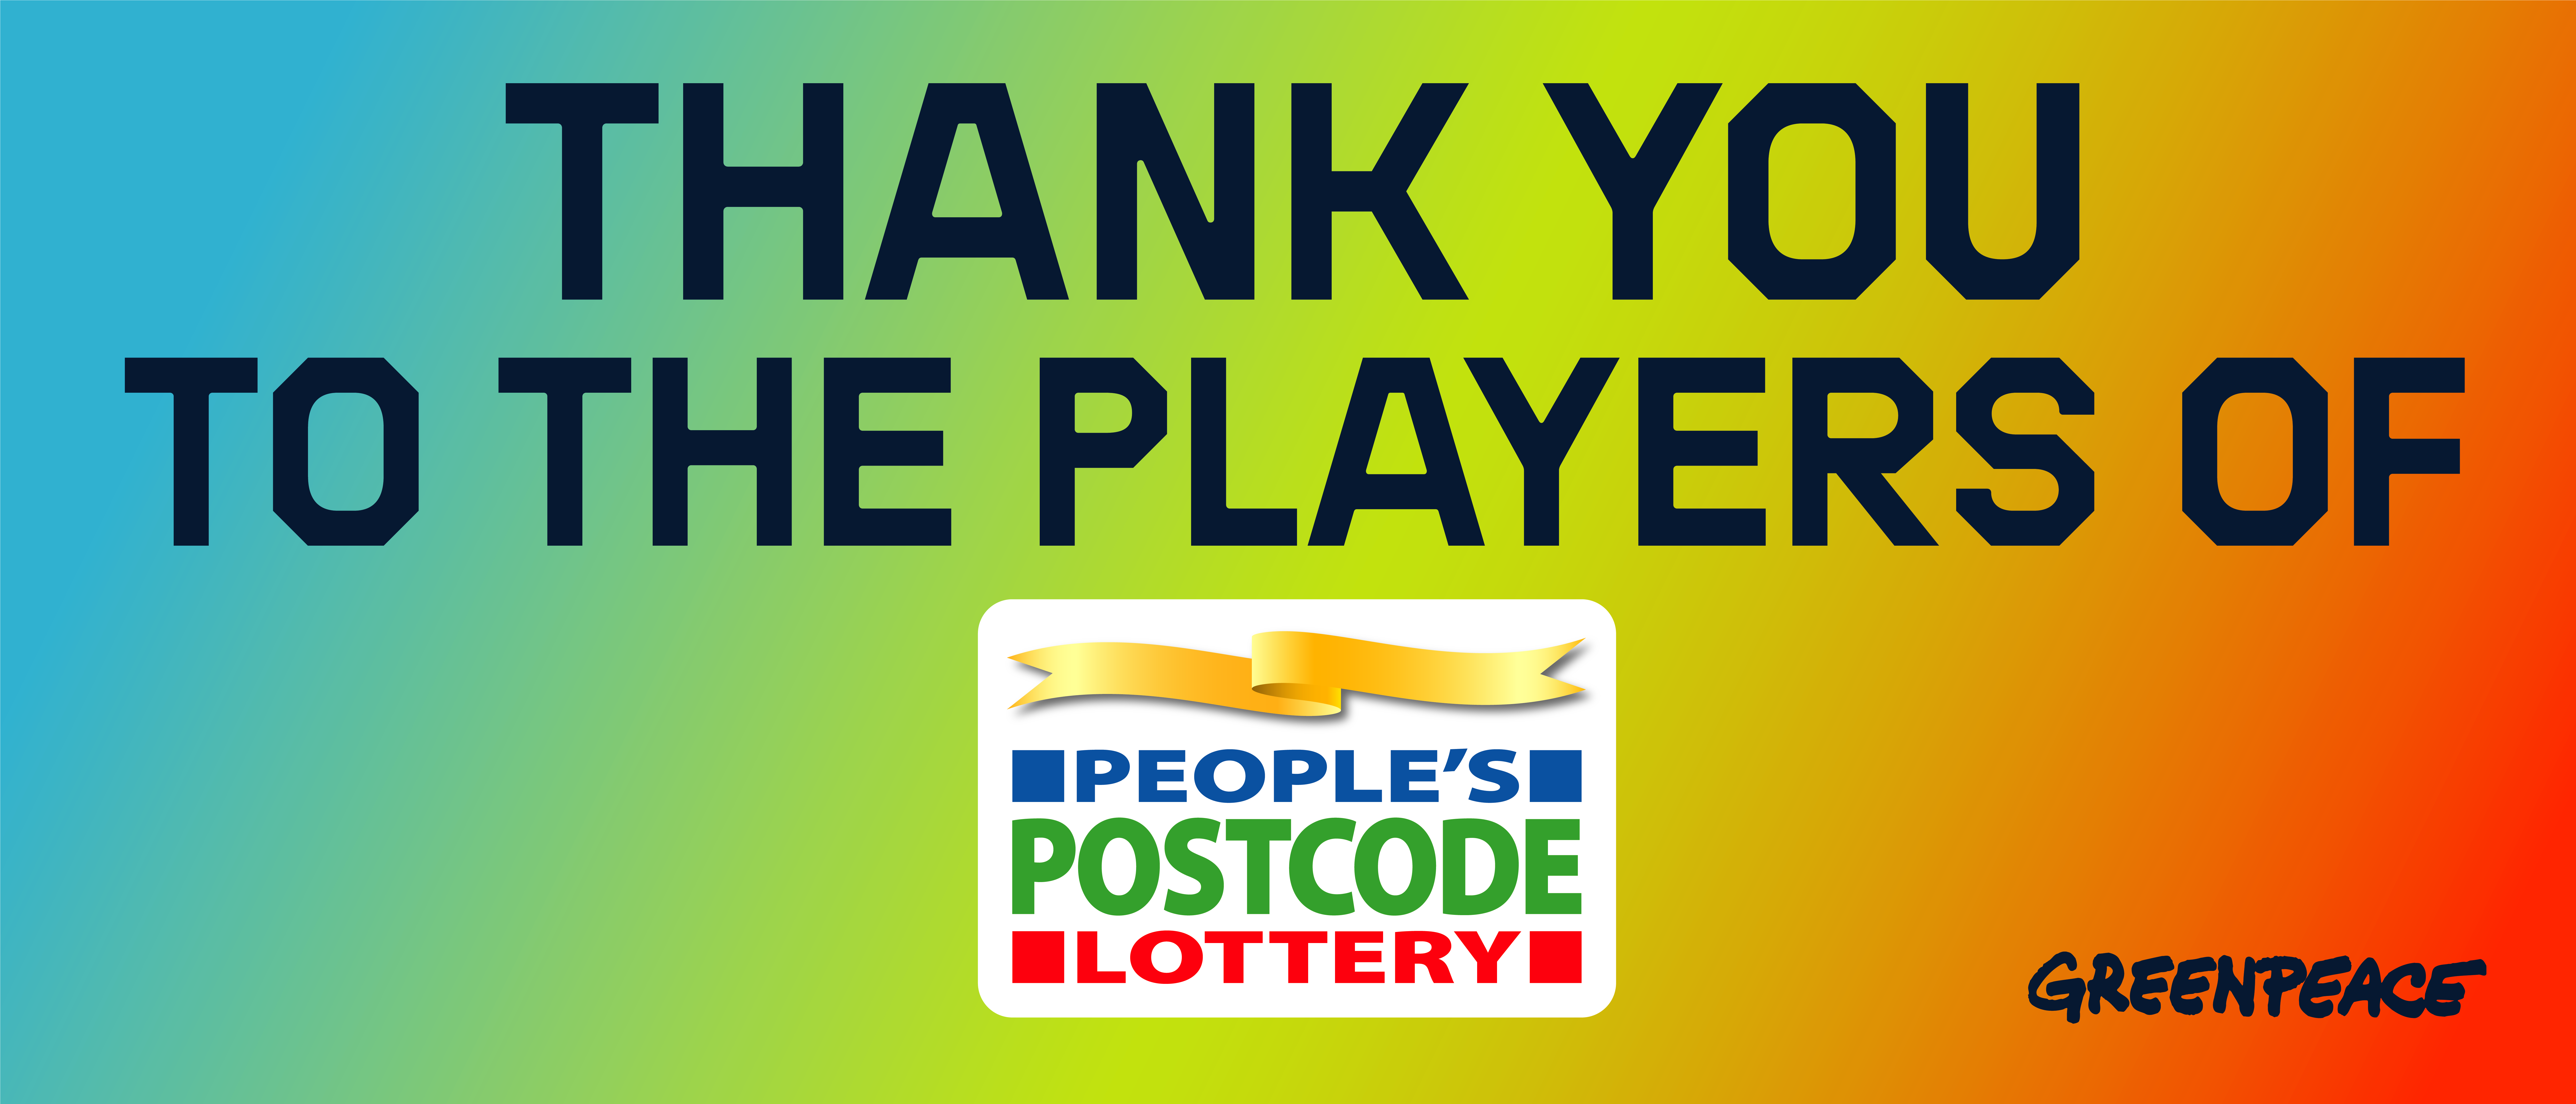 Banner reads: 'Thank you to the players of the People's Postcode Lottery'